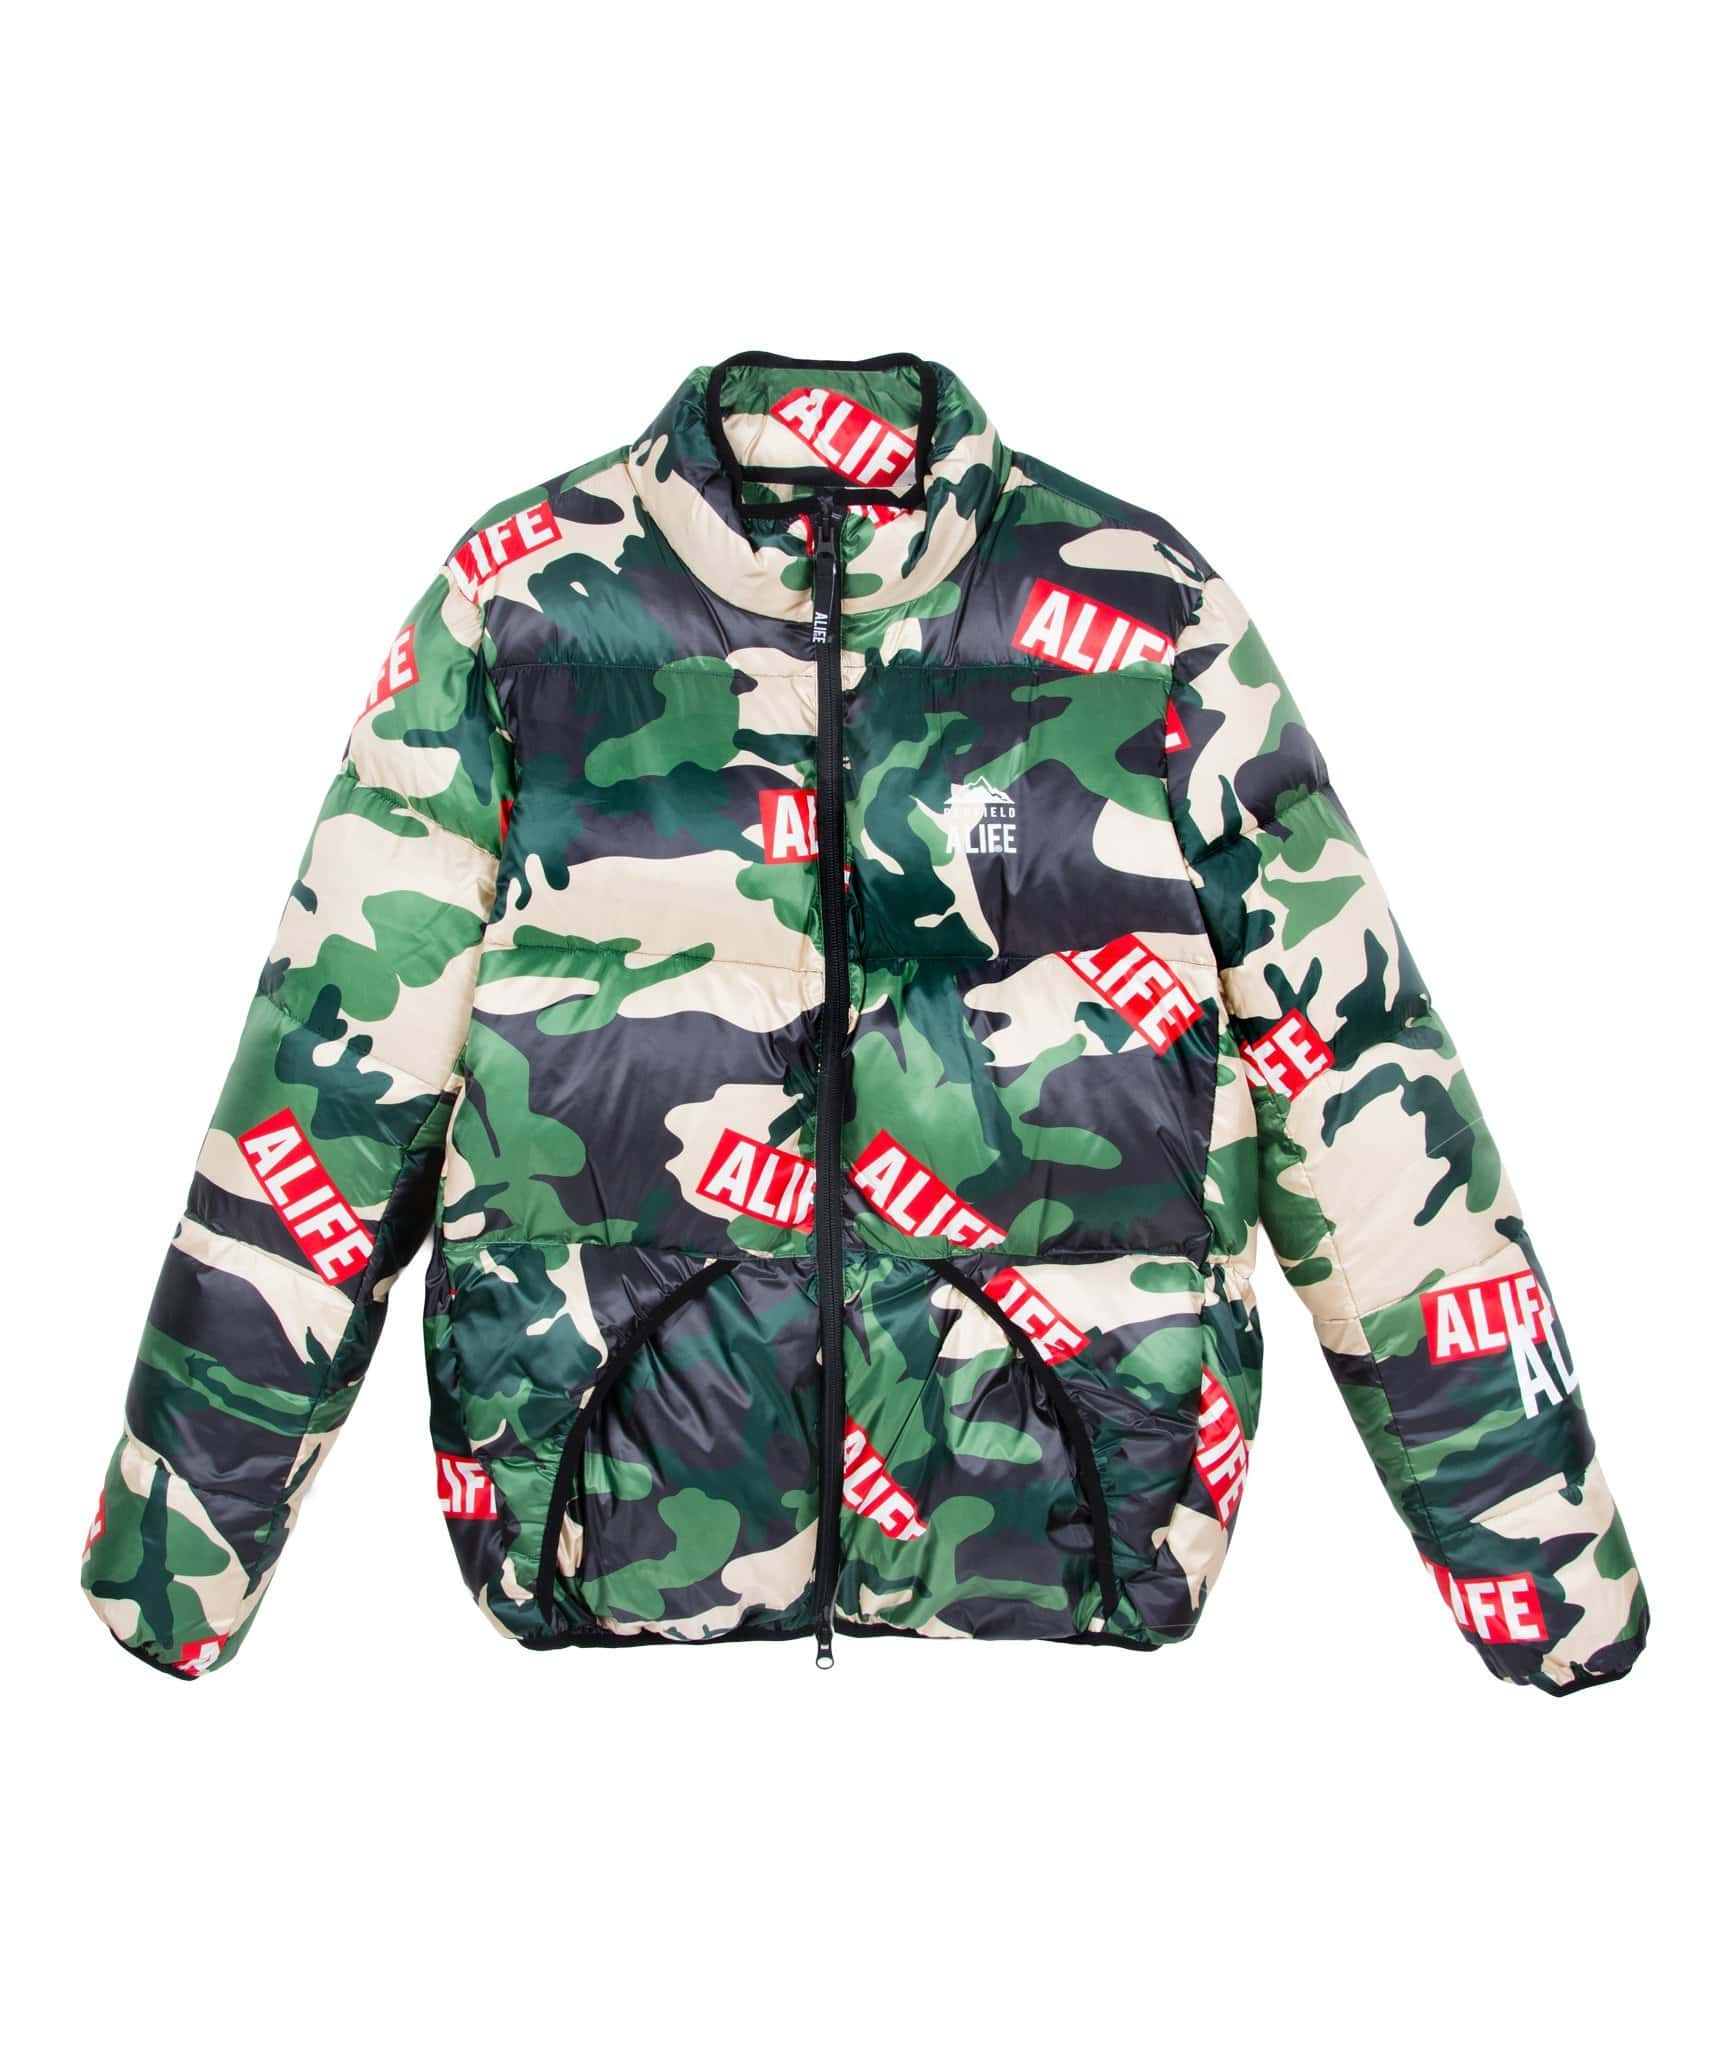 Alife/Penfield Walkabout Jacket